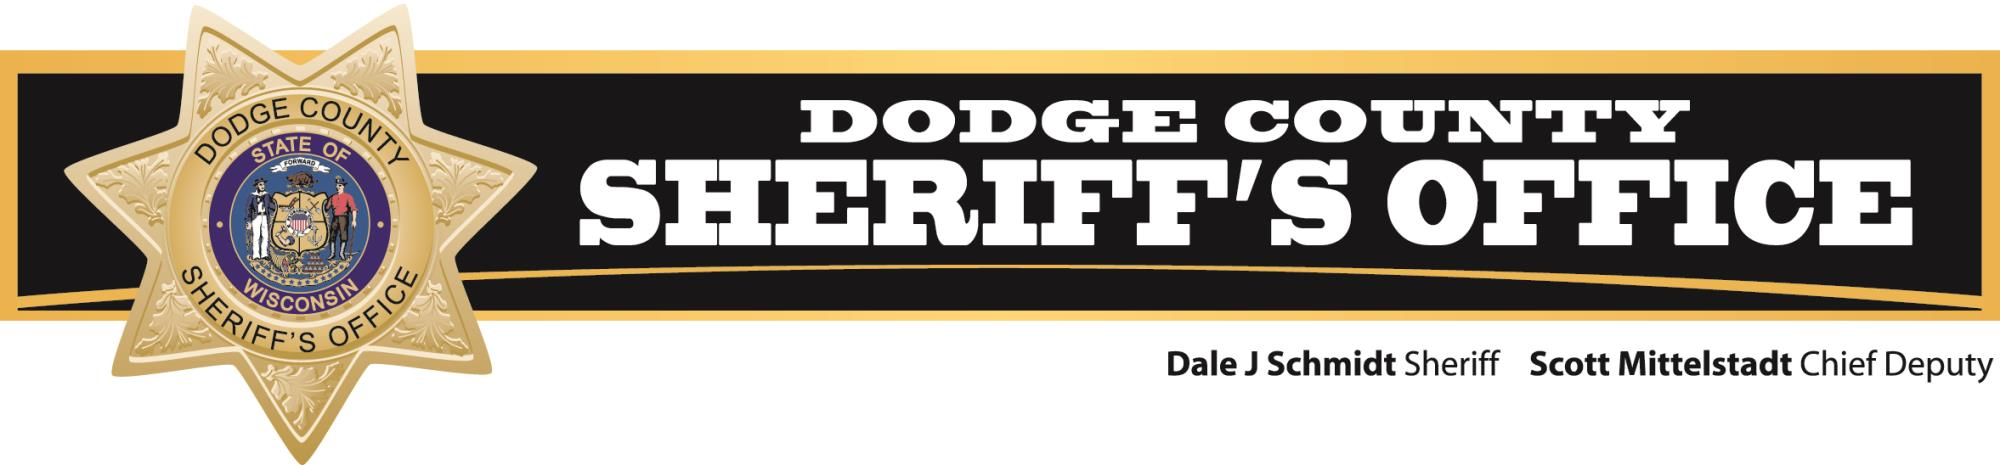 Sheriffs office dodge county wi xflitez Image collections